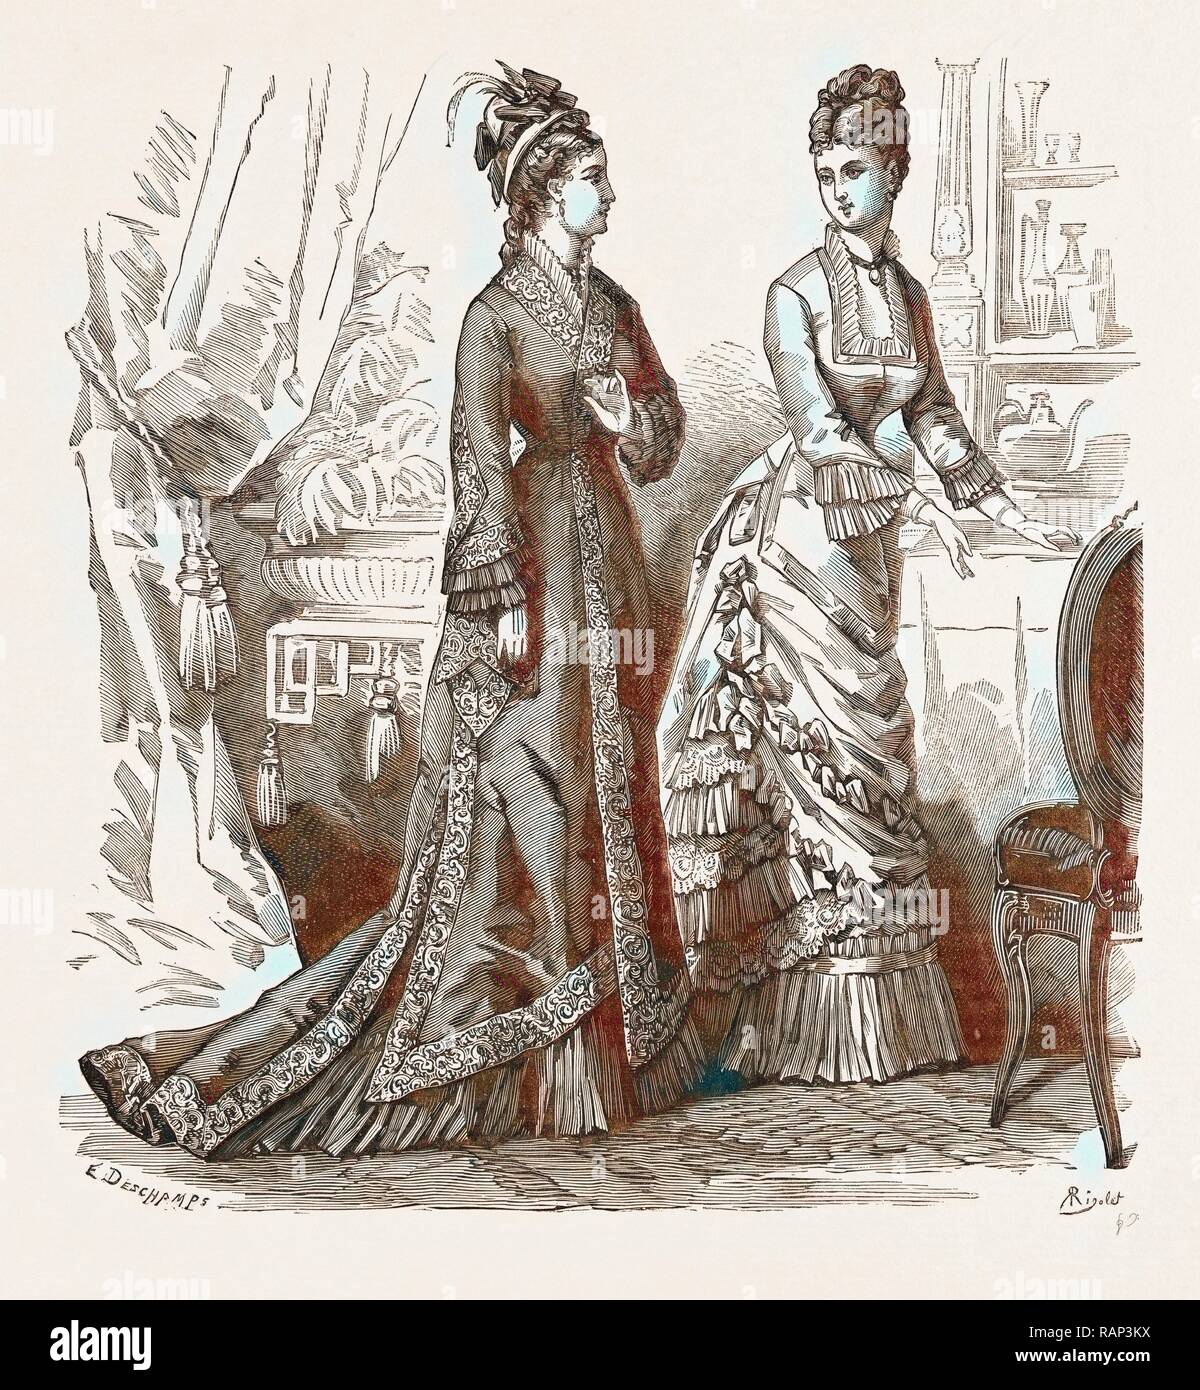 TOILETTES FOR VISITING AND CONCERTS, 19th CENTURY FASHION. Reimagined by Gibon. Classic art with a modern twist reimagined - Stock Image